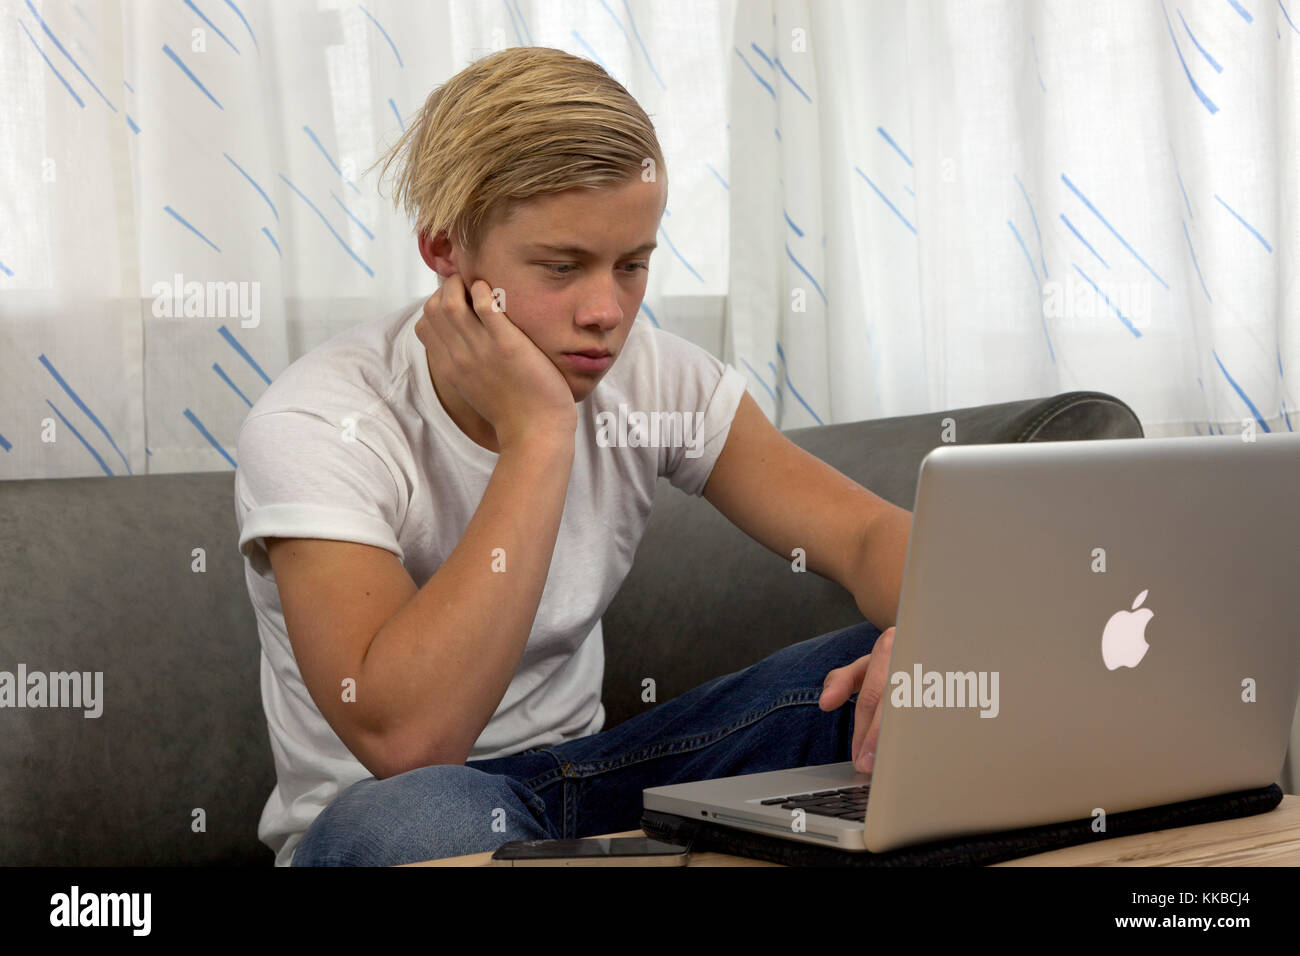 Male teenager on a couch using his Apple MacBook Pro for homework while keeping his friends up-to-date on social - Stock Image